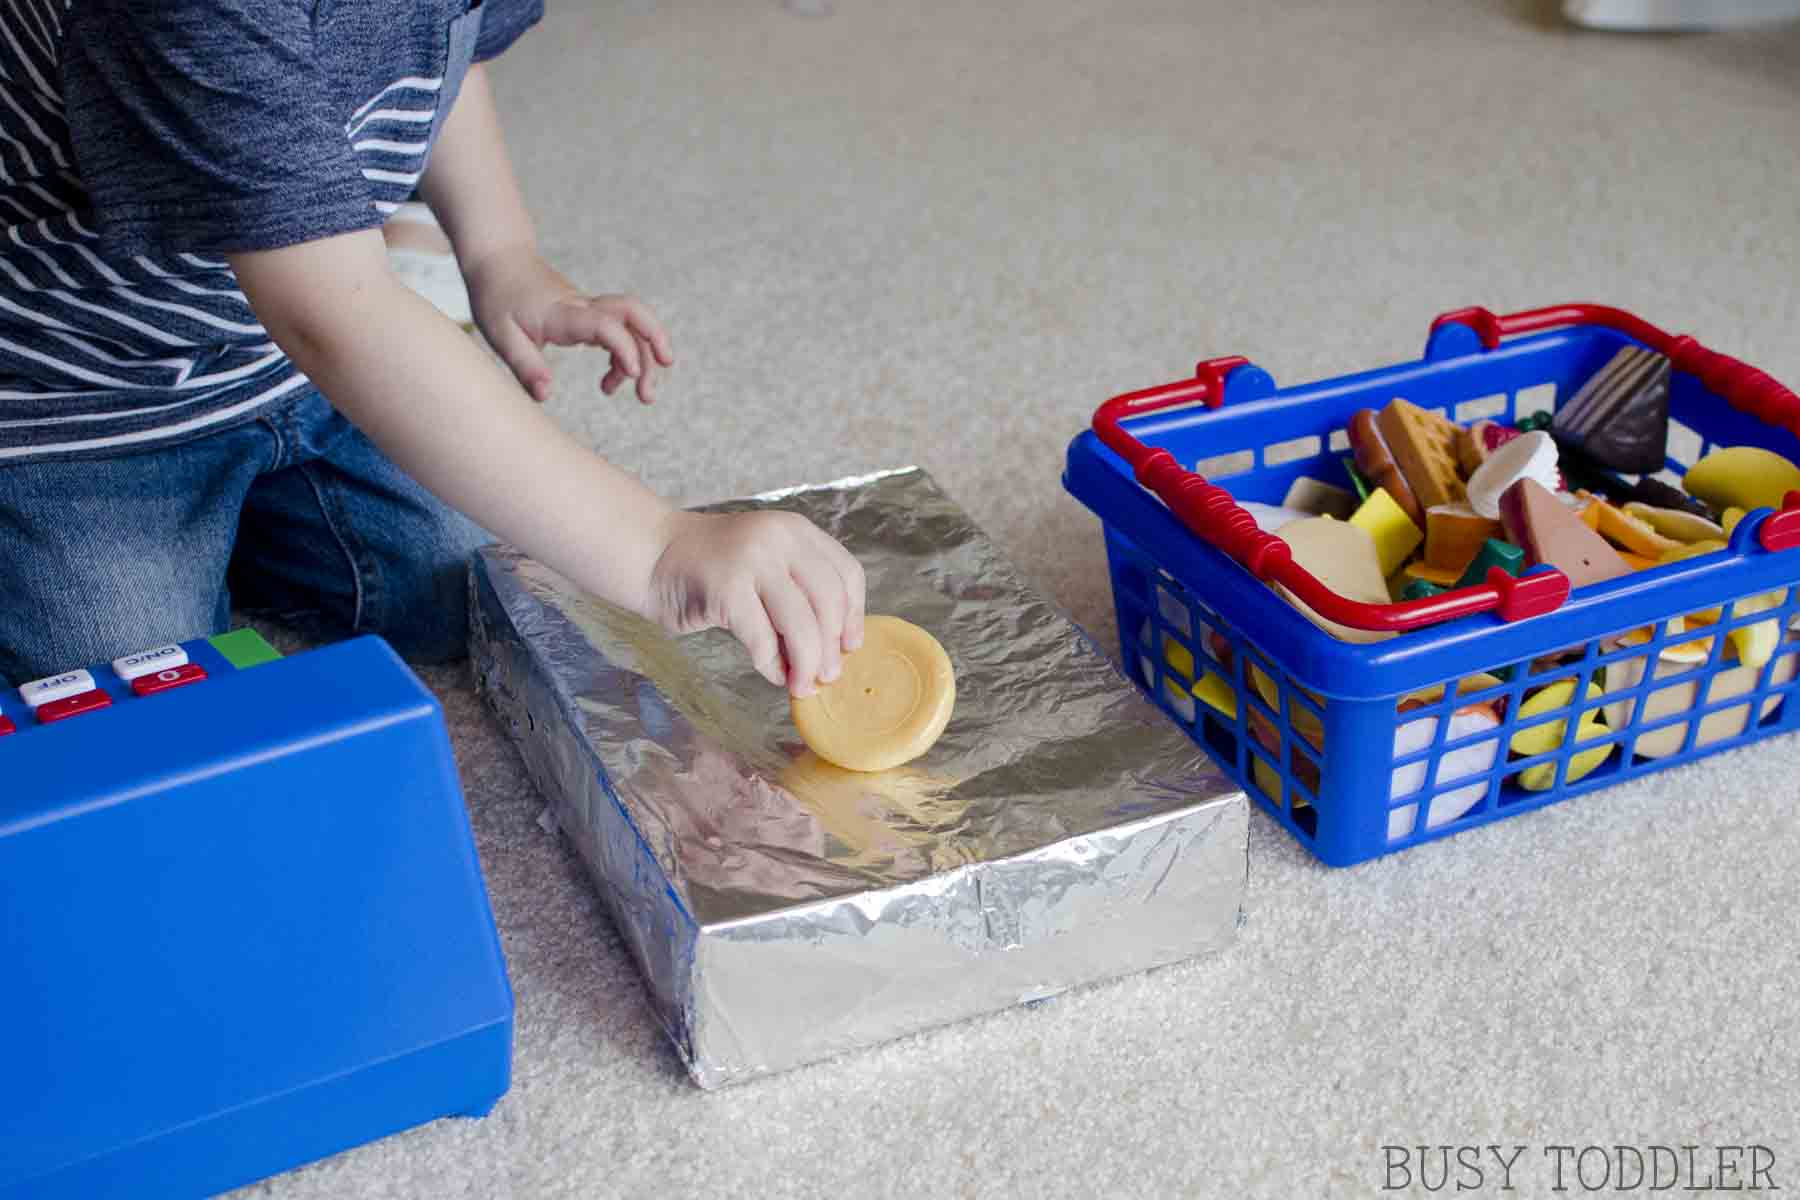 GROCERY STORE DRAMATIC PLAY: Set up a fun imaginative play center for toddlers and preschoolers; perfect indoor activity